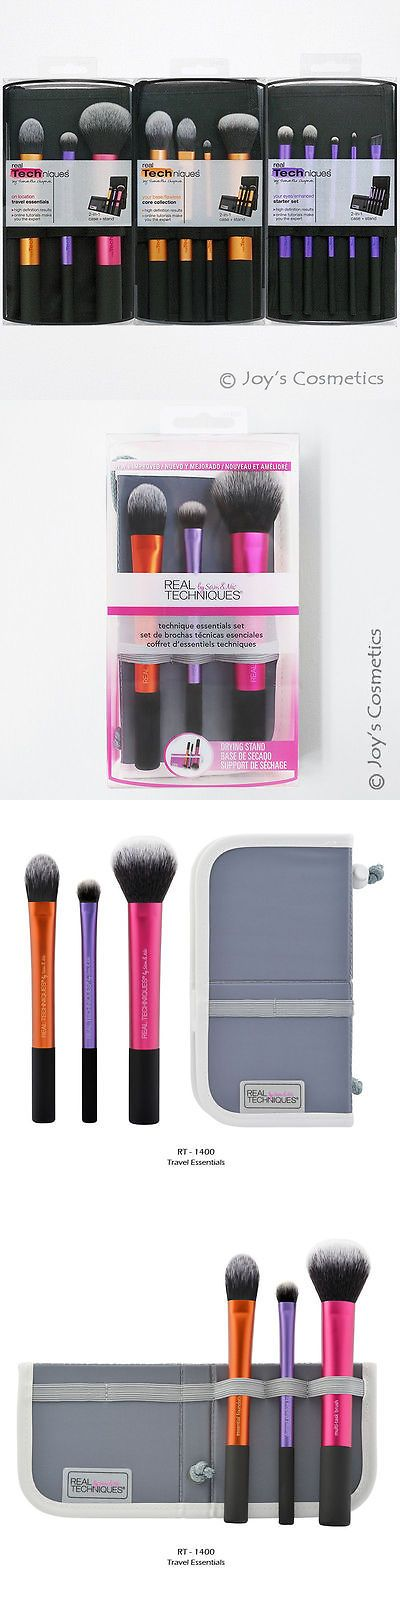 Brushes: 3 Real Techniques Makeup Brush 3 Kits Lot - Full Set *Joy S Cosmetics* -> BUY IT NOW ONLY: $35.02 on eBay!